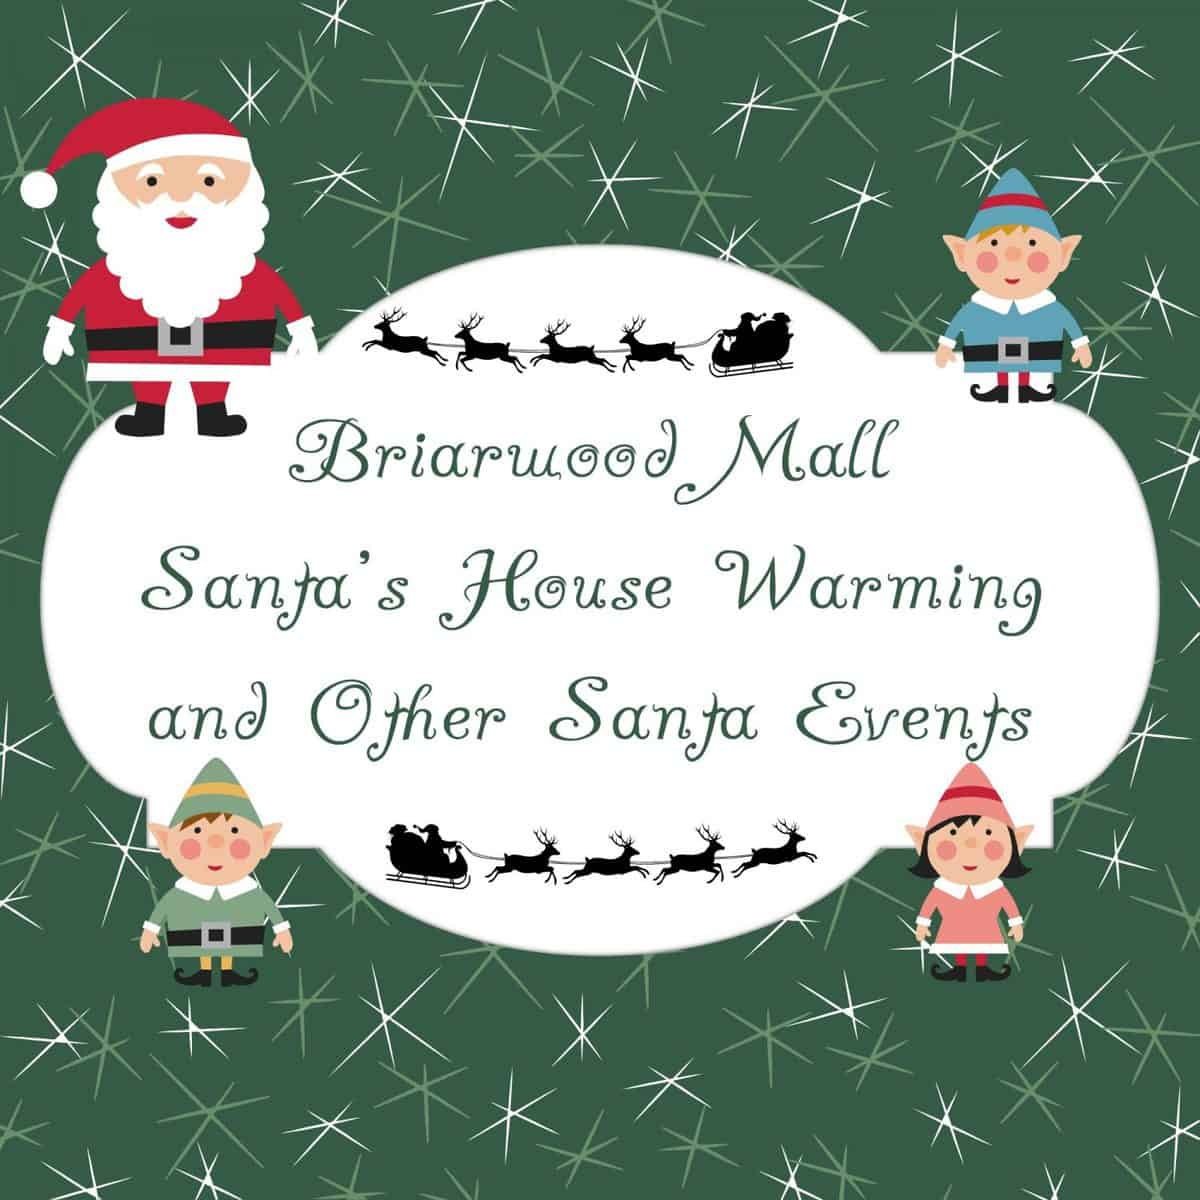 Briarwood Mall Santa Arrival & Other Events | A2withKids